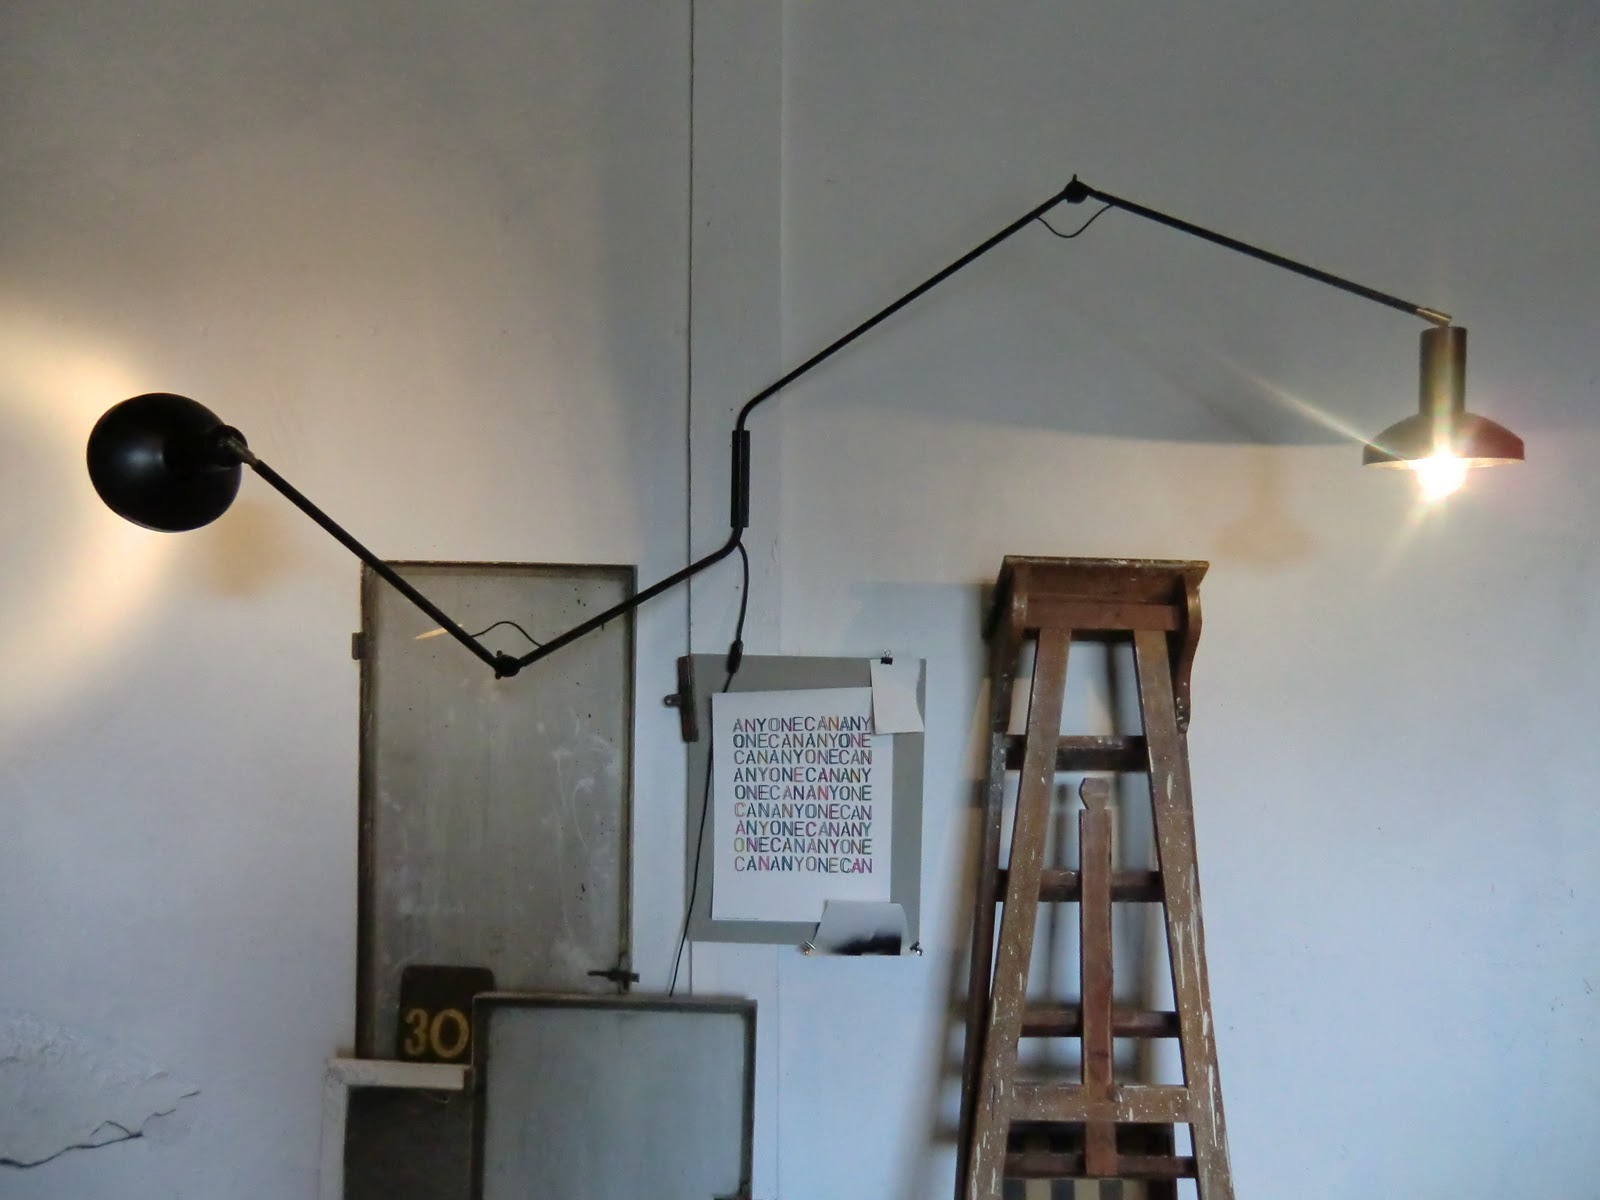 Wo and w collection double lampe murale articul e vintage - Lampe articulee murale ...